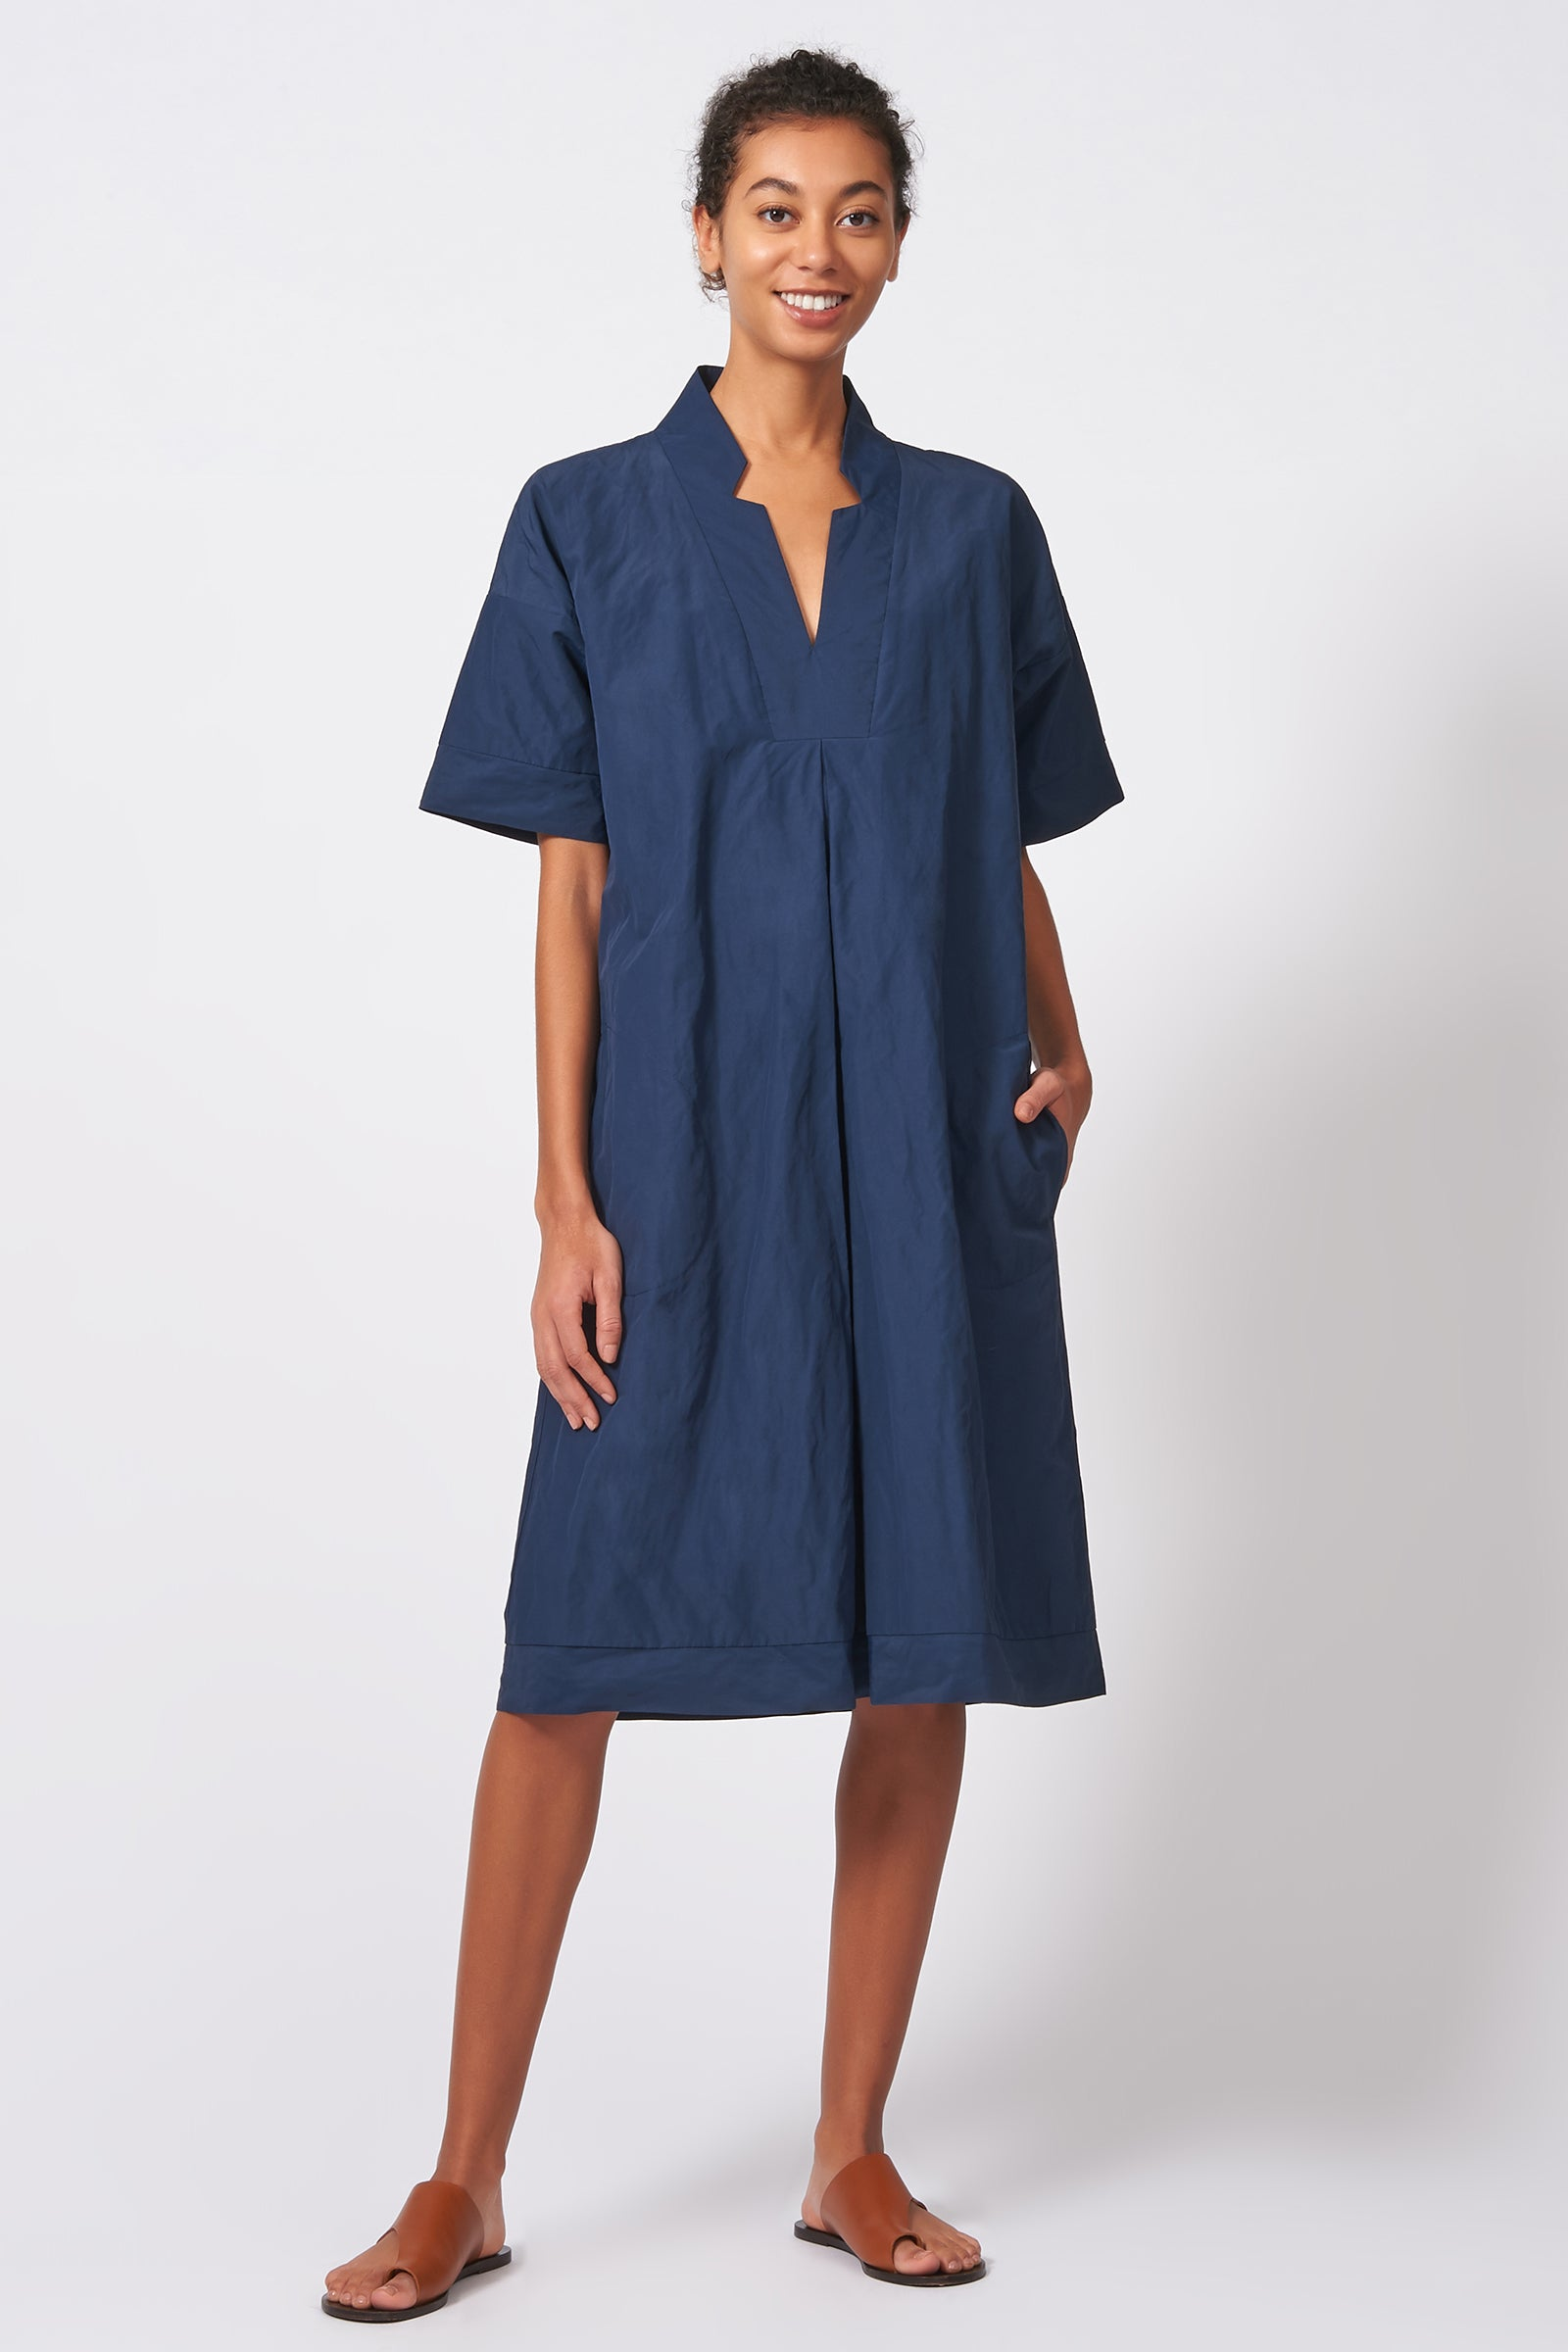 Kal Rieman Notch Placket Dress in Navy Cotton Nylon on Model Full Front View